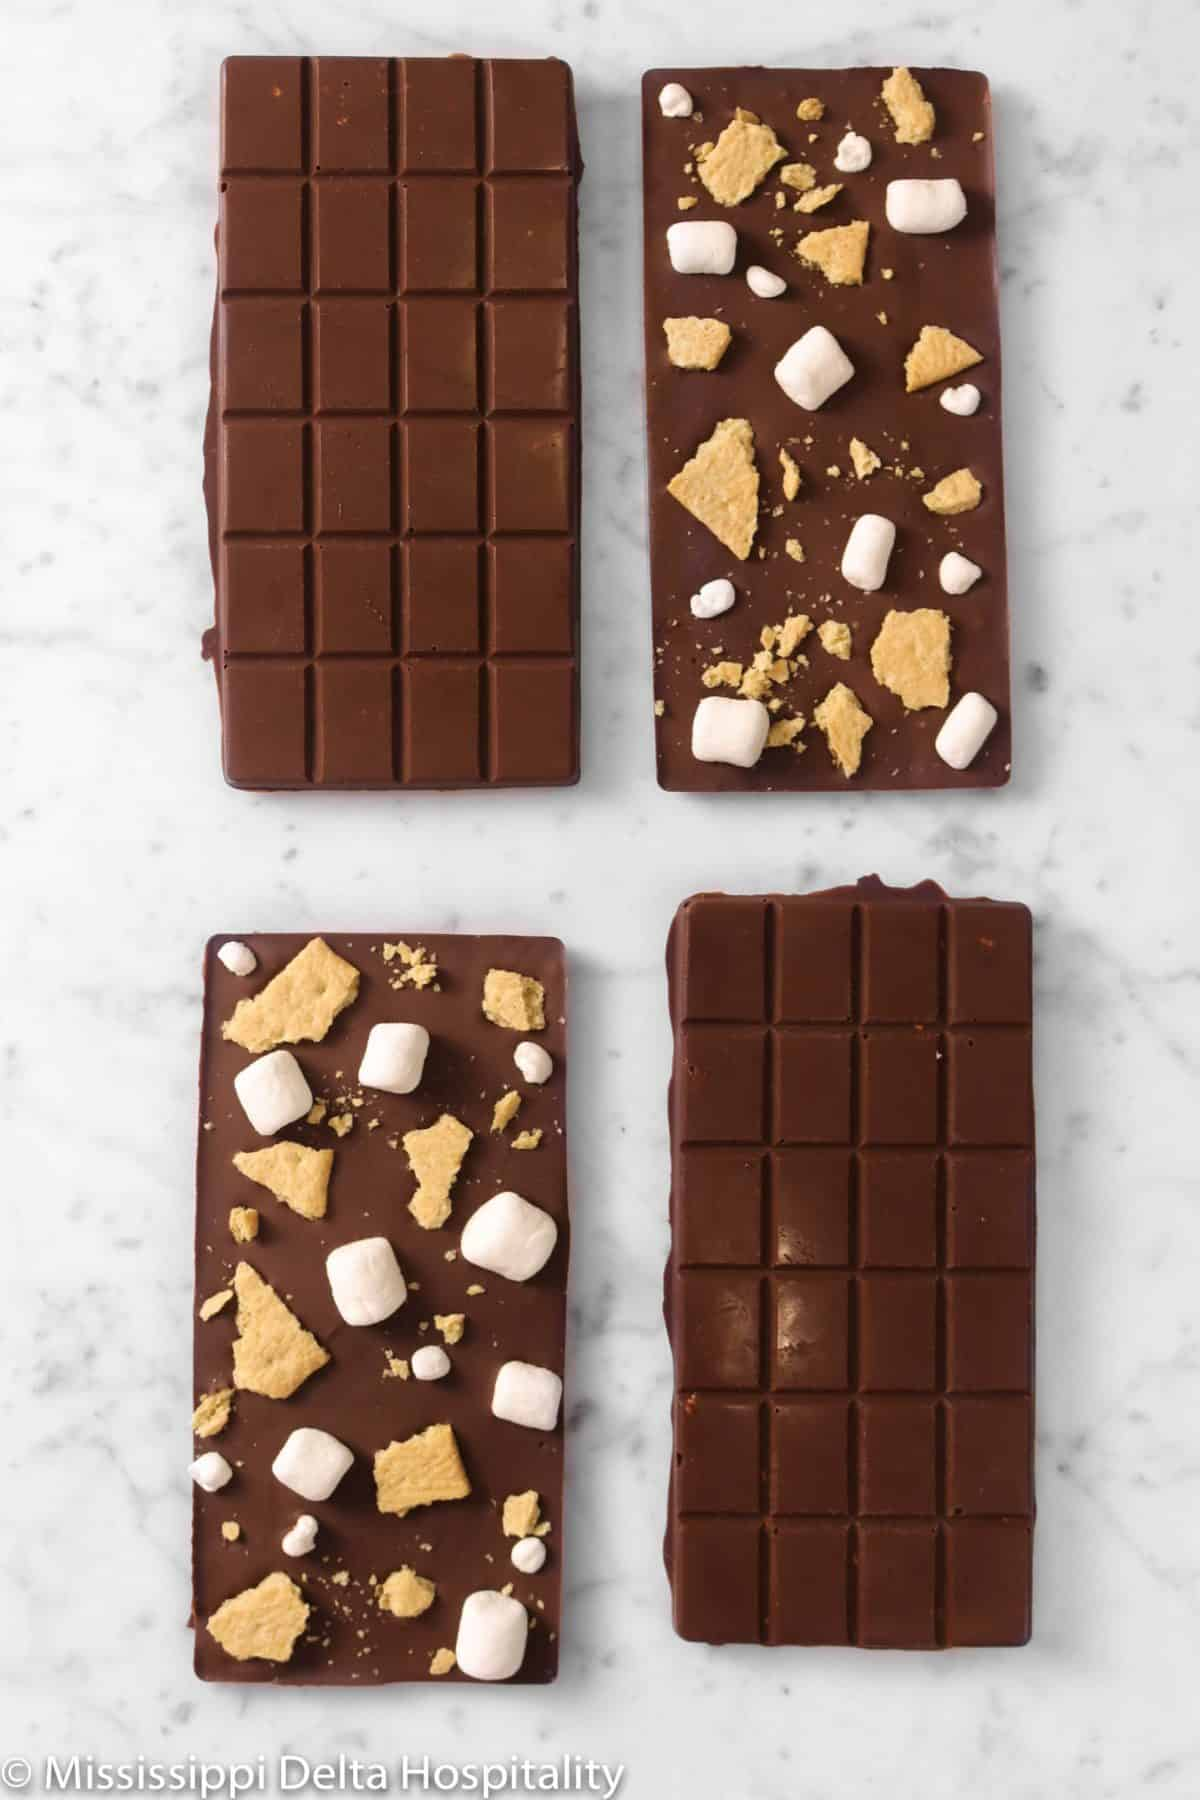 four chocolate bars on a marble board